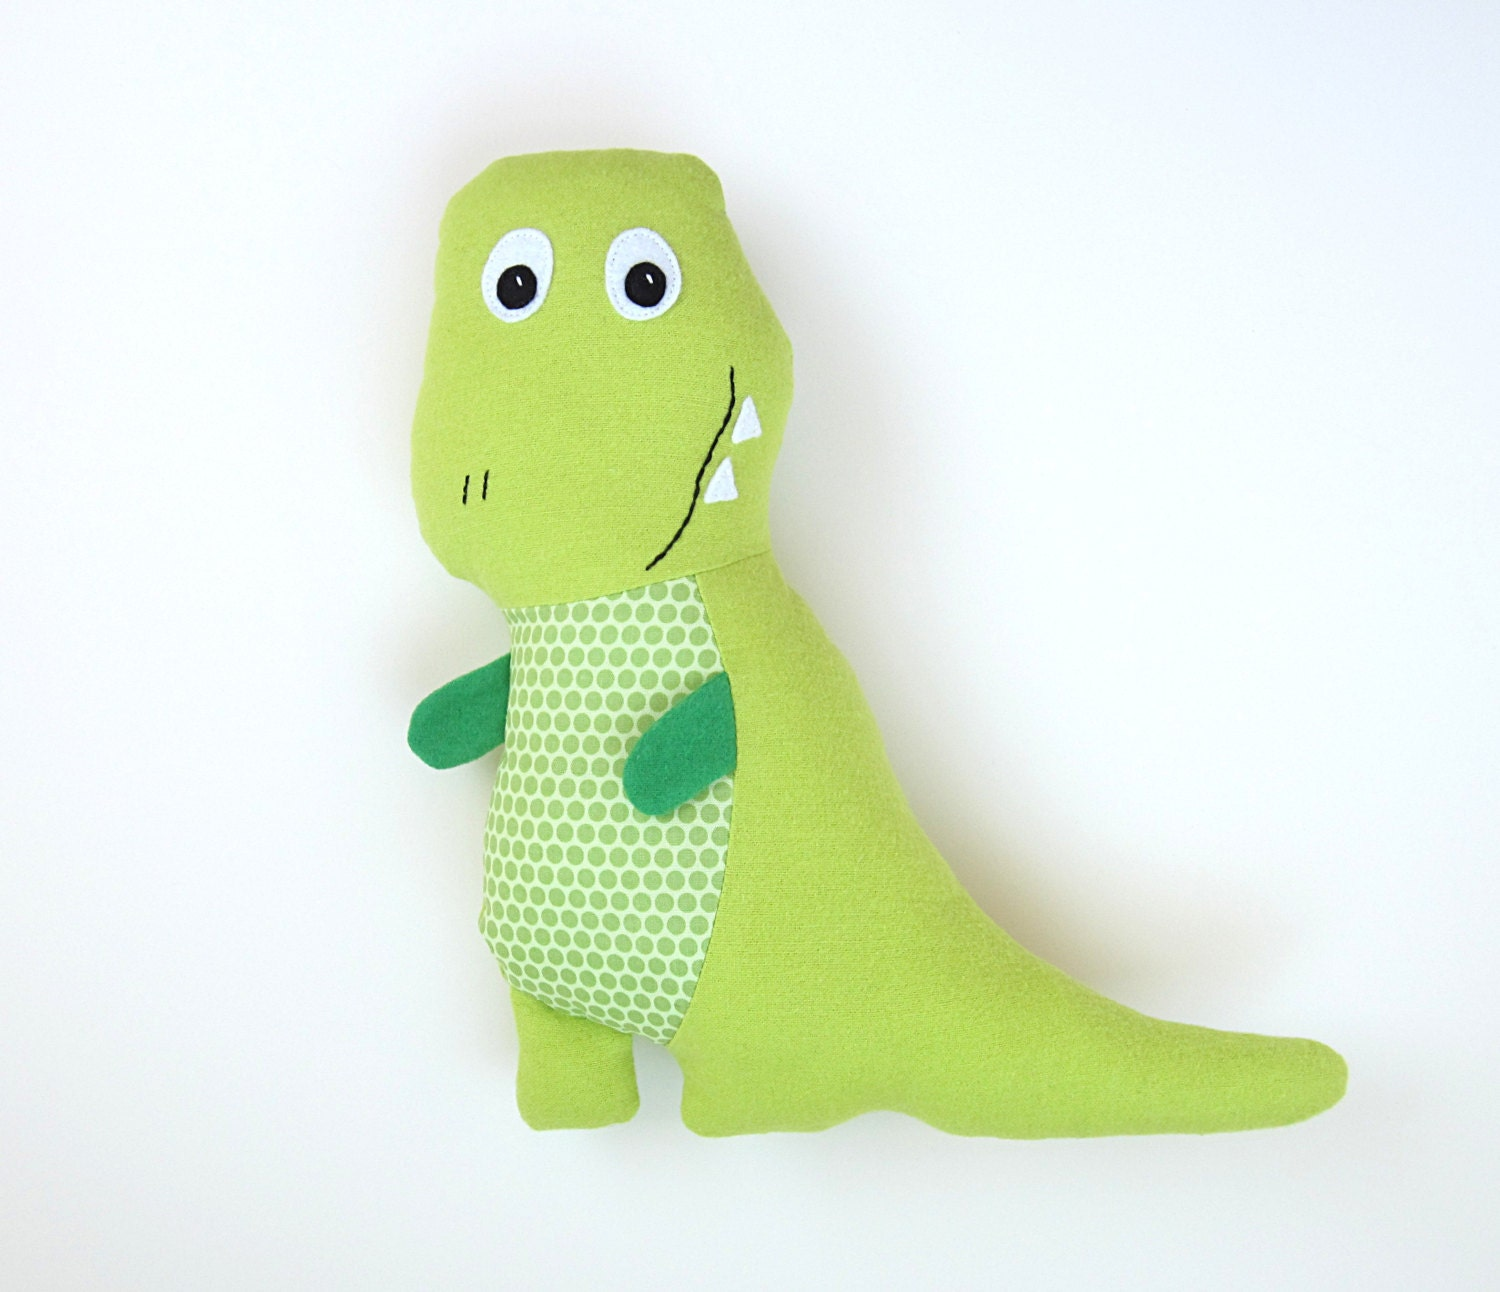 Tony T-Rex Pattern DIY Stuffed Dinosaur Toy and Baby Dinosaur Set, Tracy TRex Tutorial DIY Friendly Dinosaur Pdf Sewing Pattern - MyFunnyBuddy